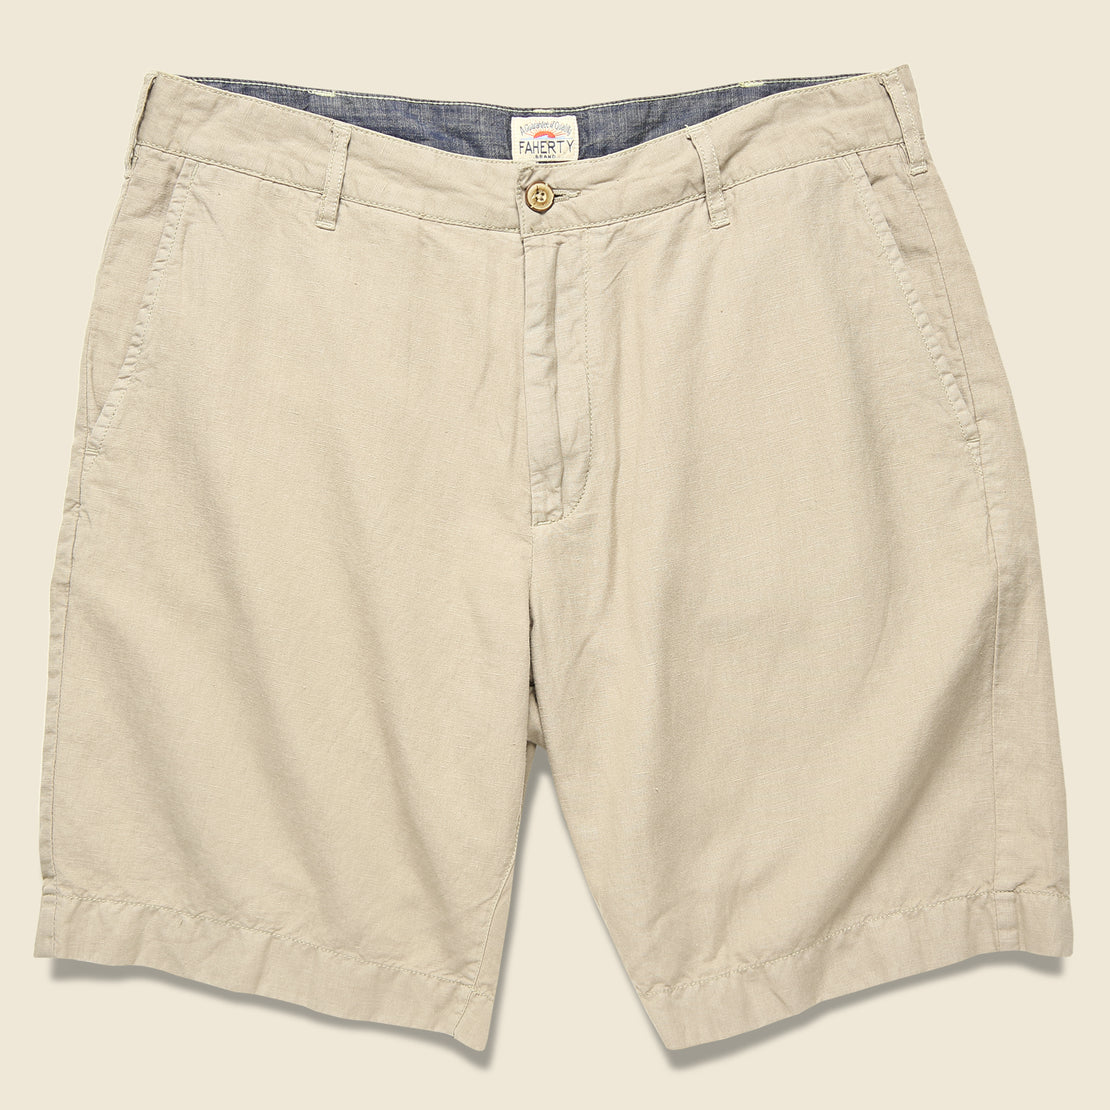 Faherty Malibu Short - Khaki